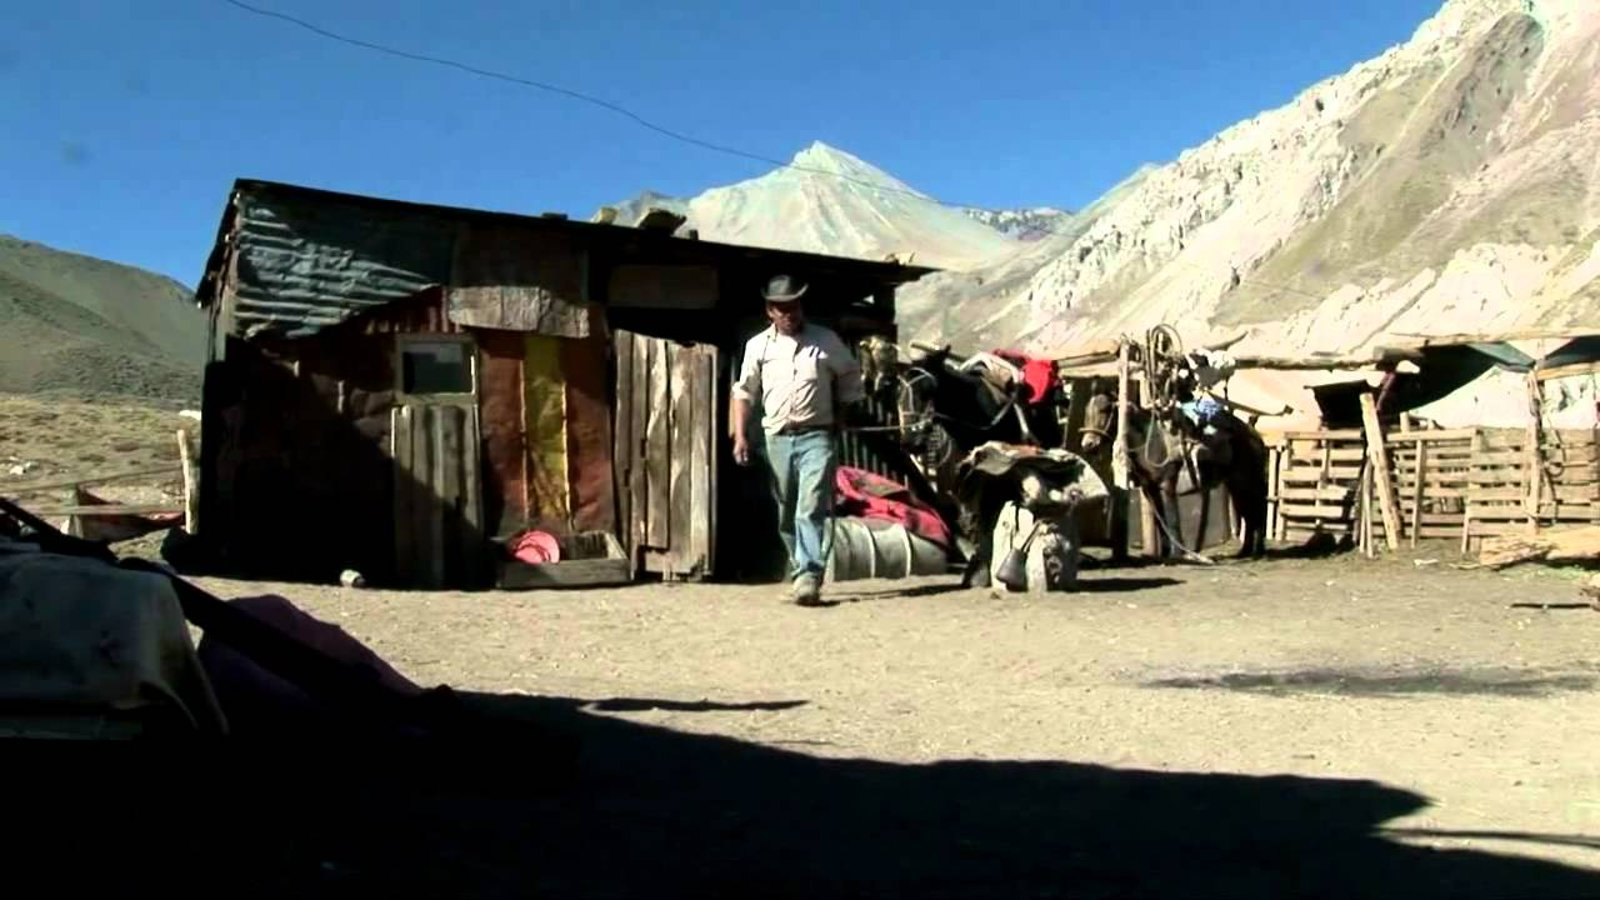 Arrieros - Argentinean Mountain Laborers